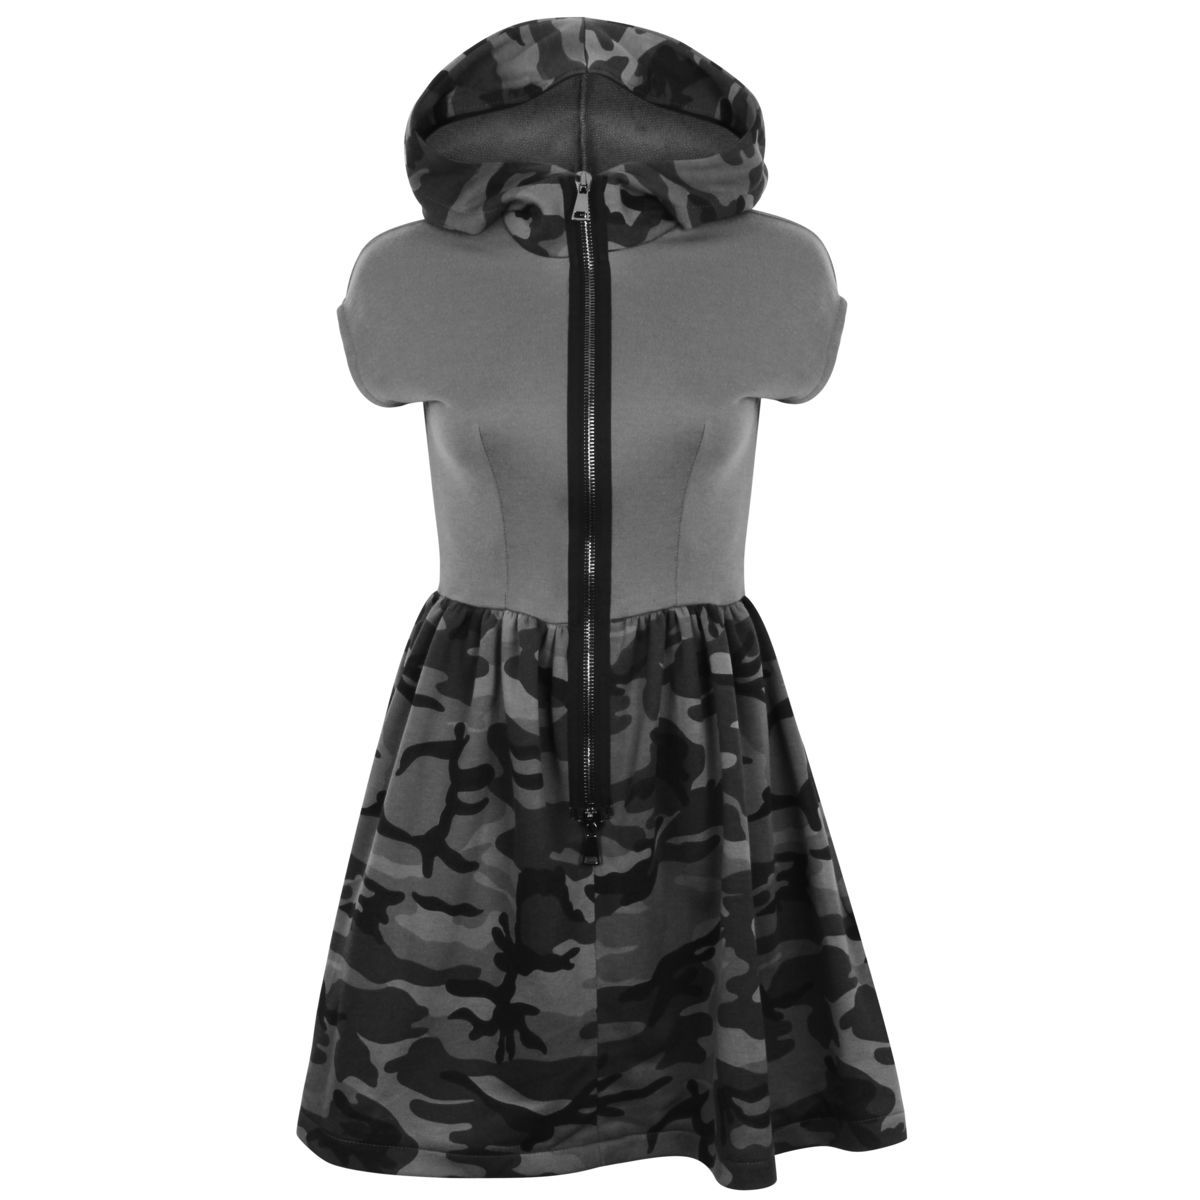 Sleeveless Hoodie Dress (Grey Camo) - product images  of